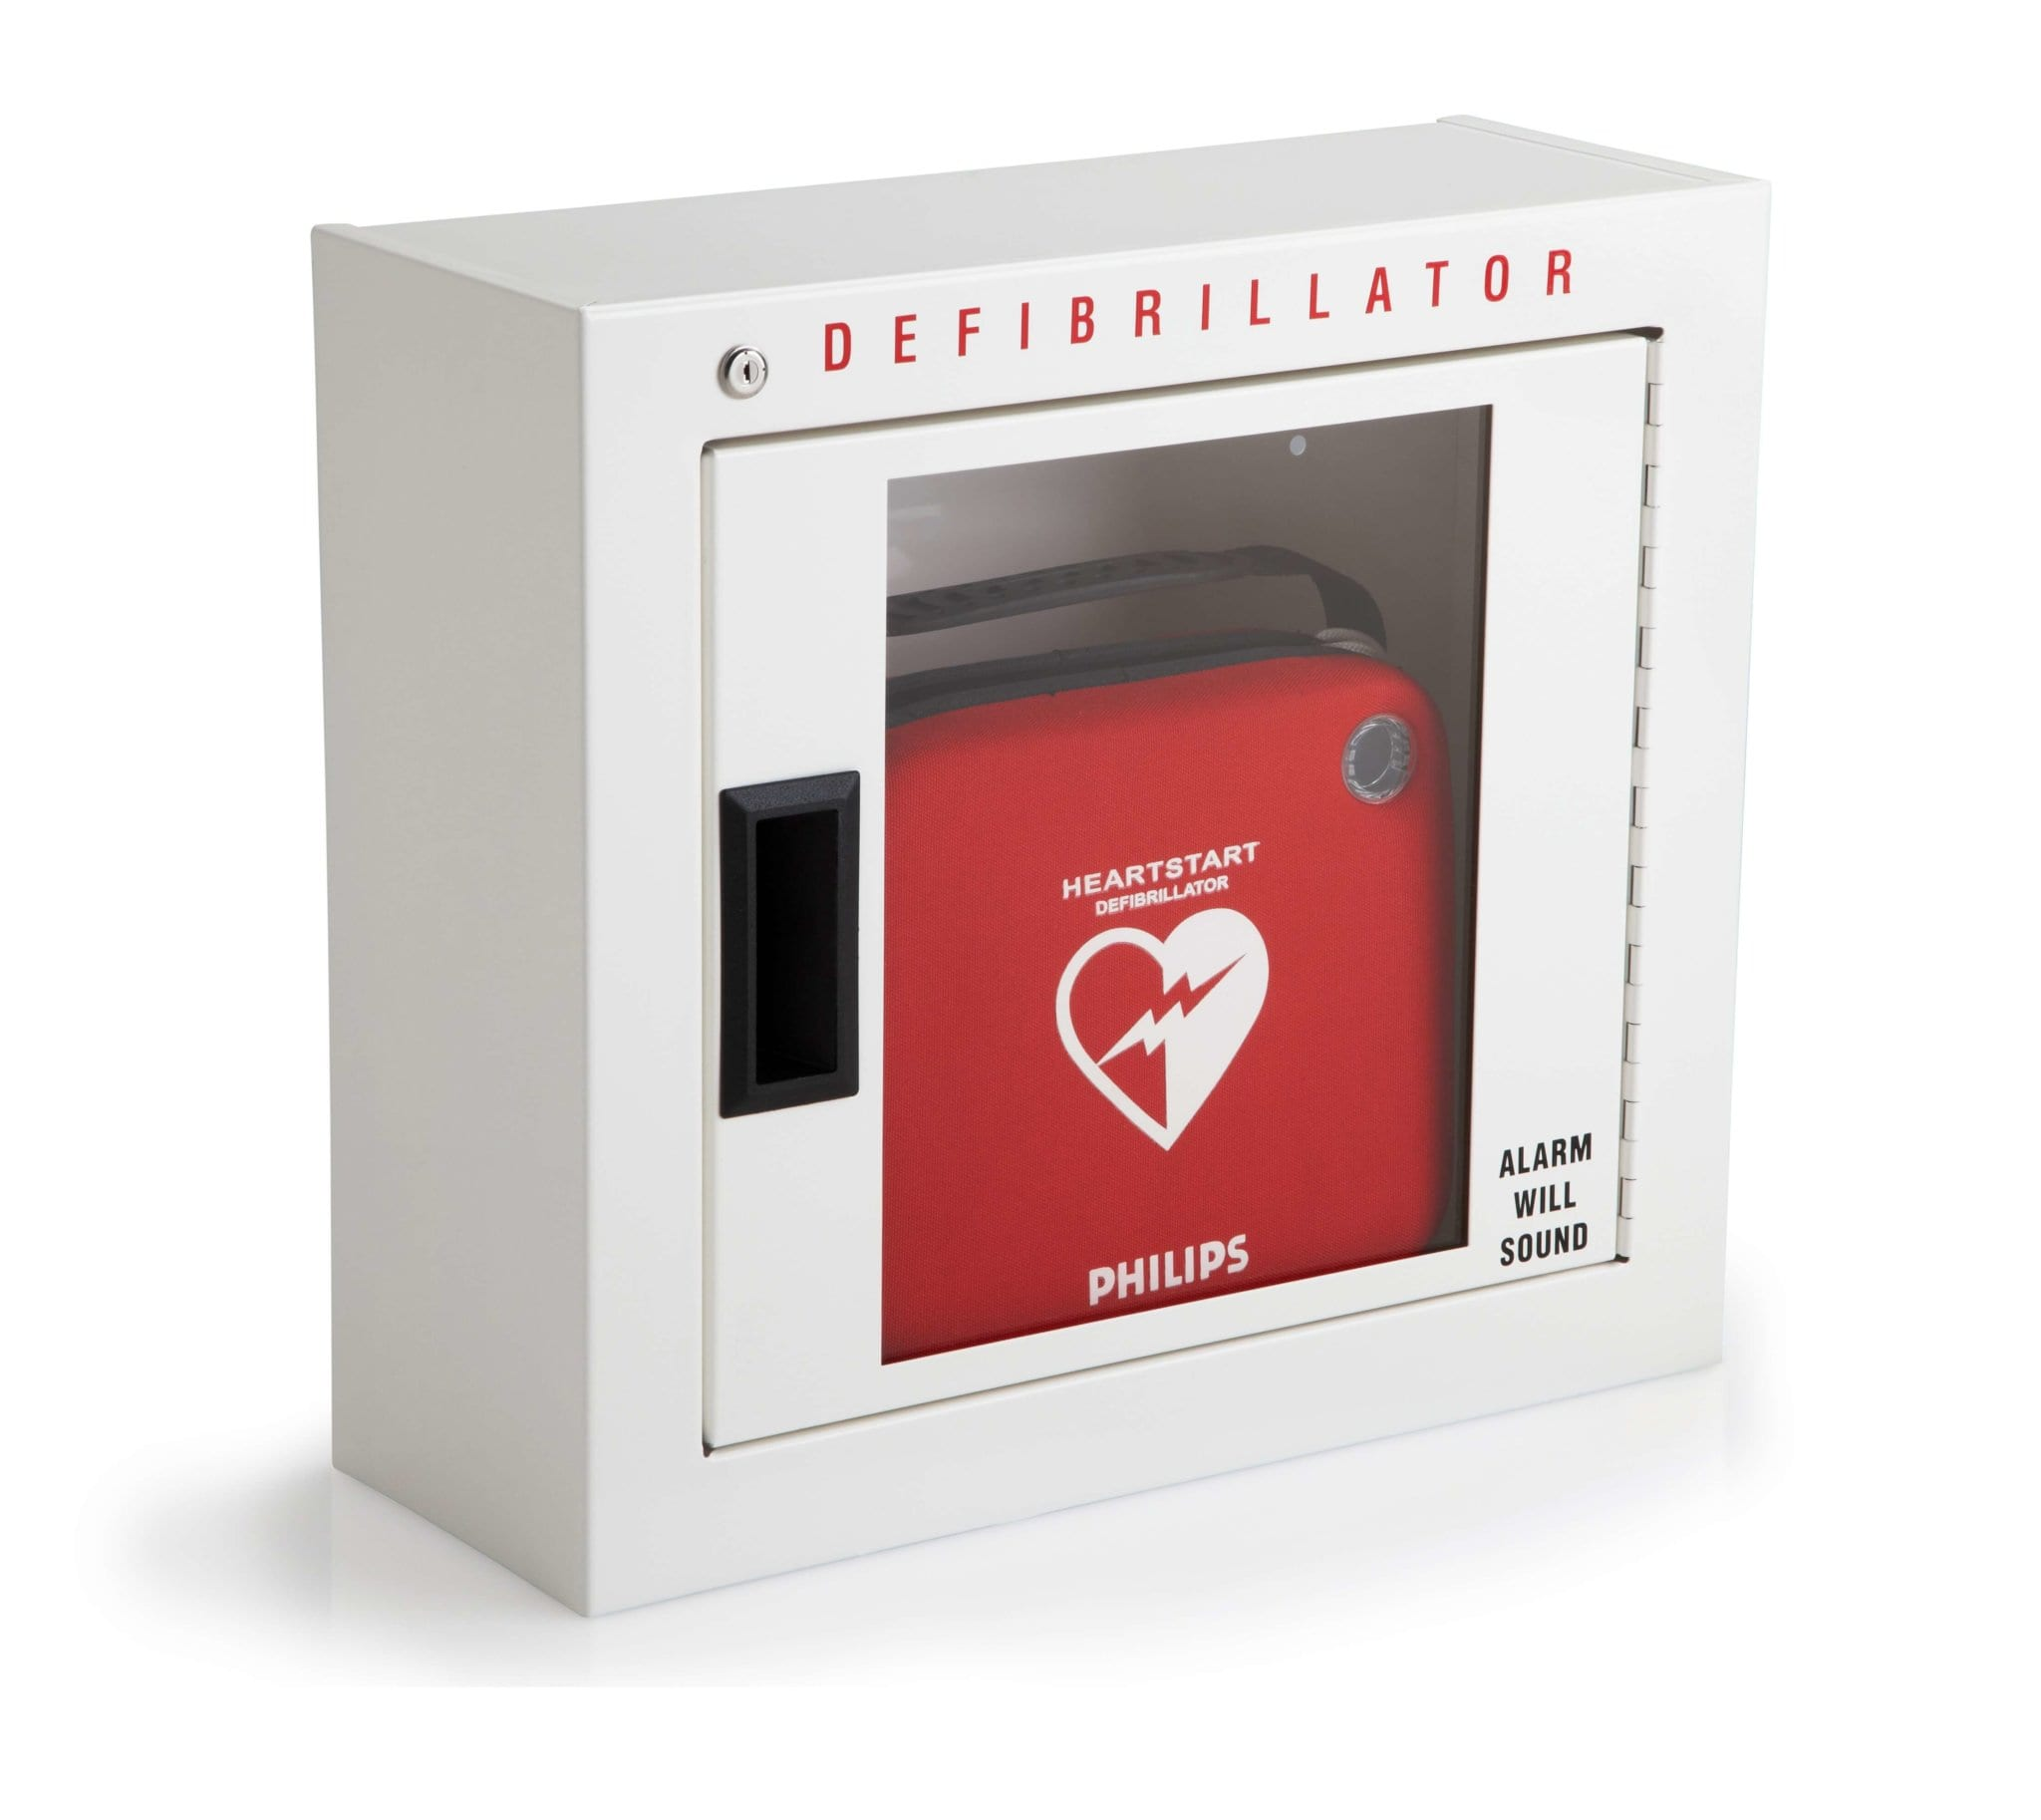 Charmant Philips Basic Surface Mounted Aed Cabinet